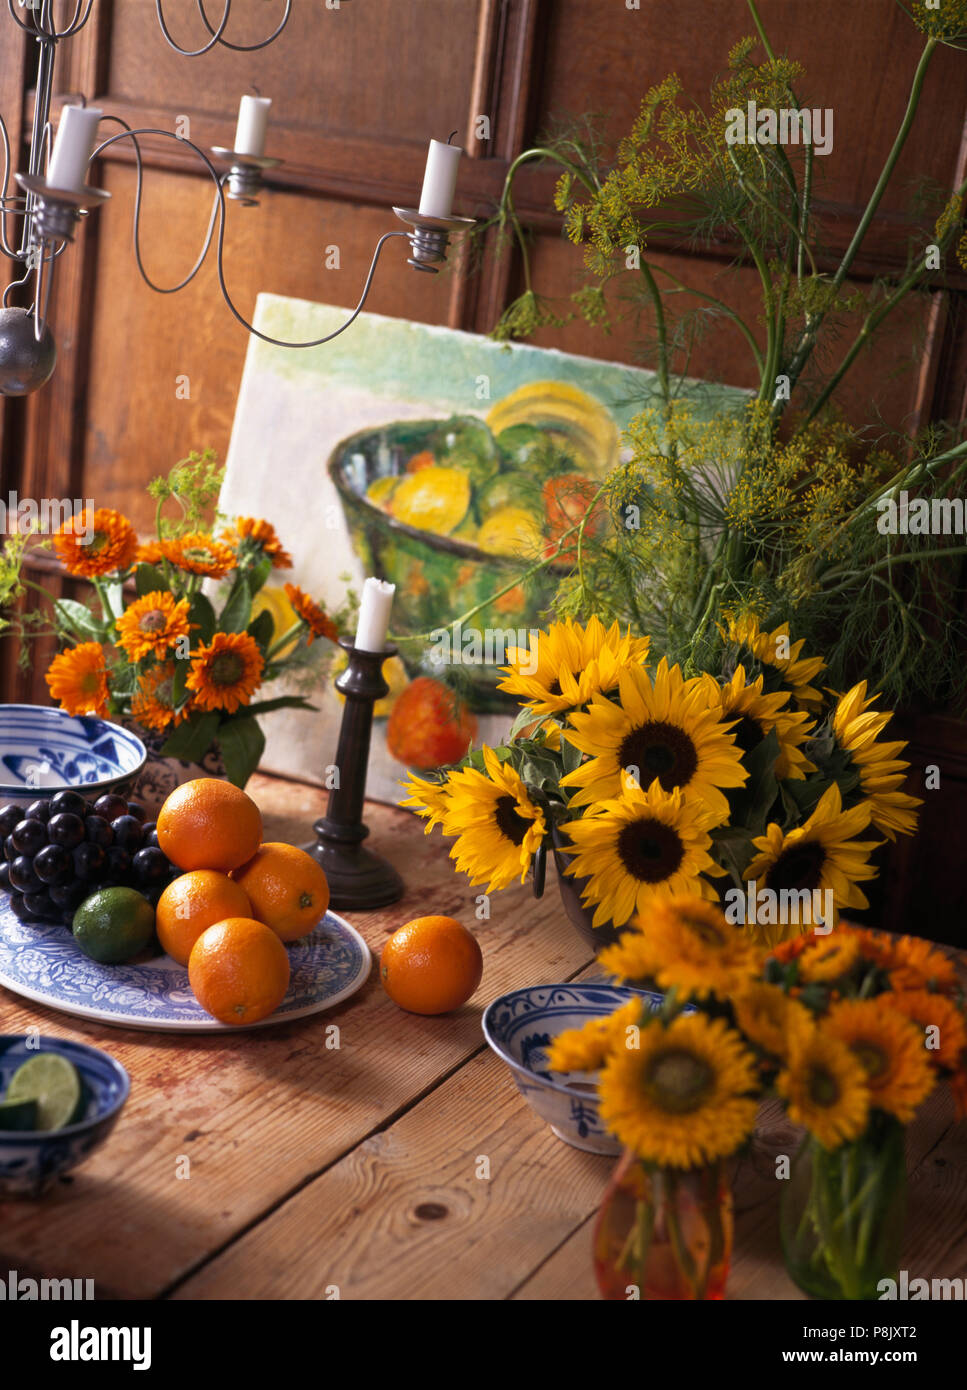 Still Life Of Yellow Sunflowers And Orange Marigolds In Simple Floral Arrangements Stock Photo Alamy